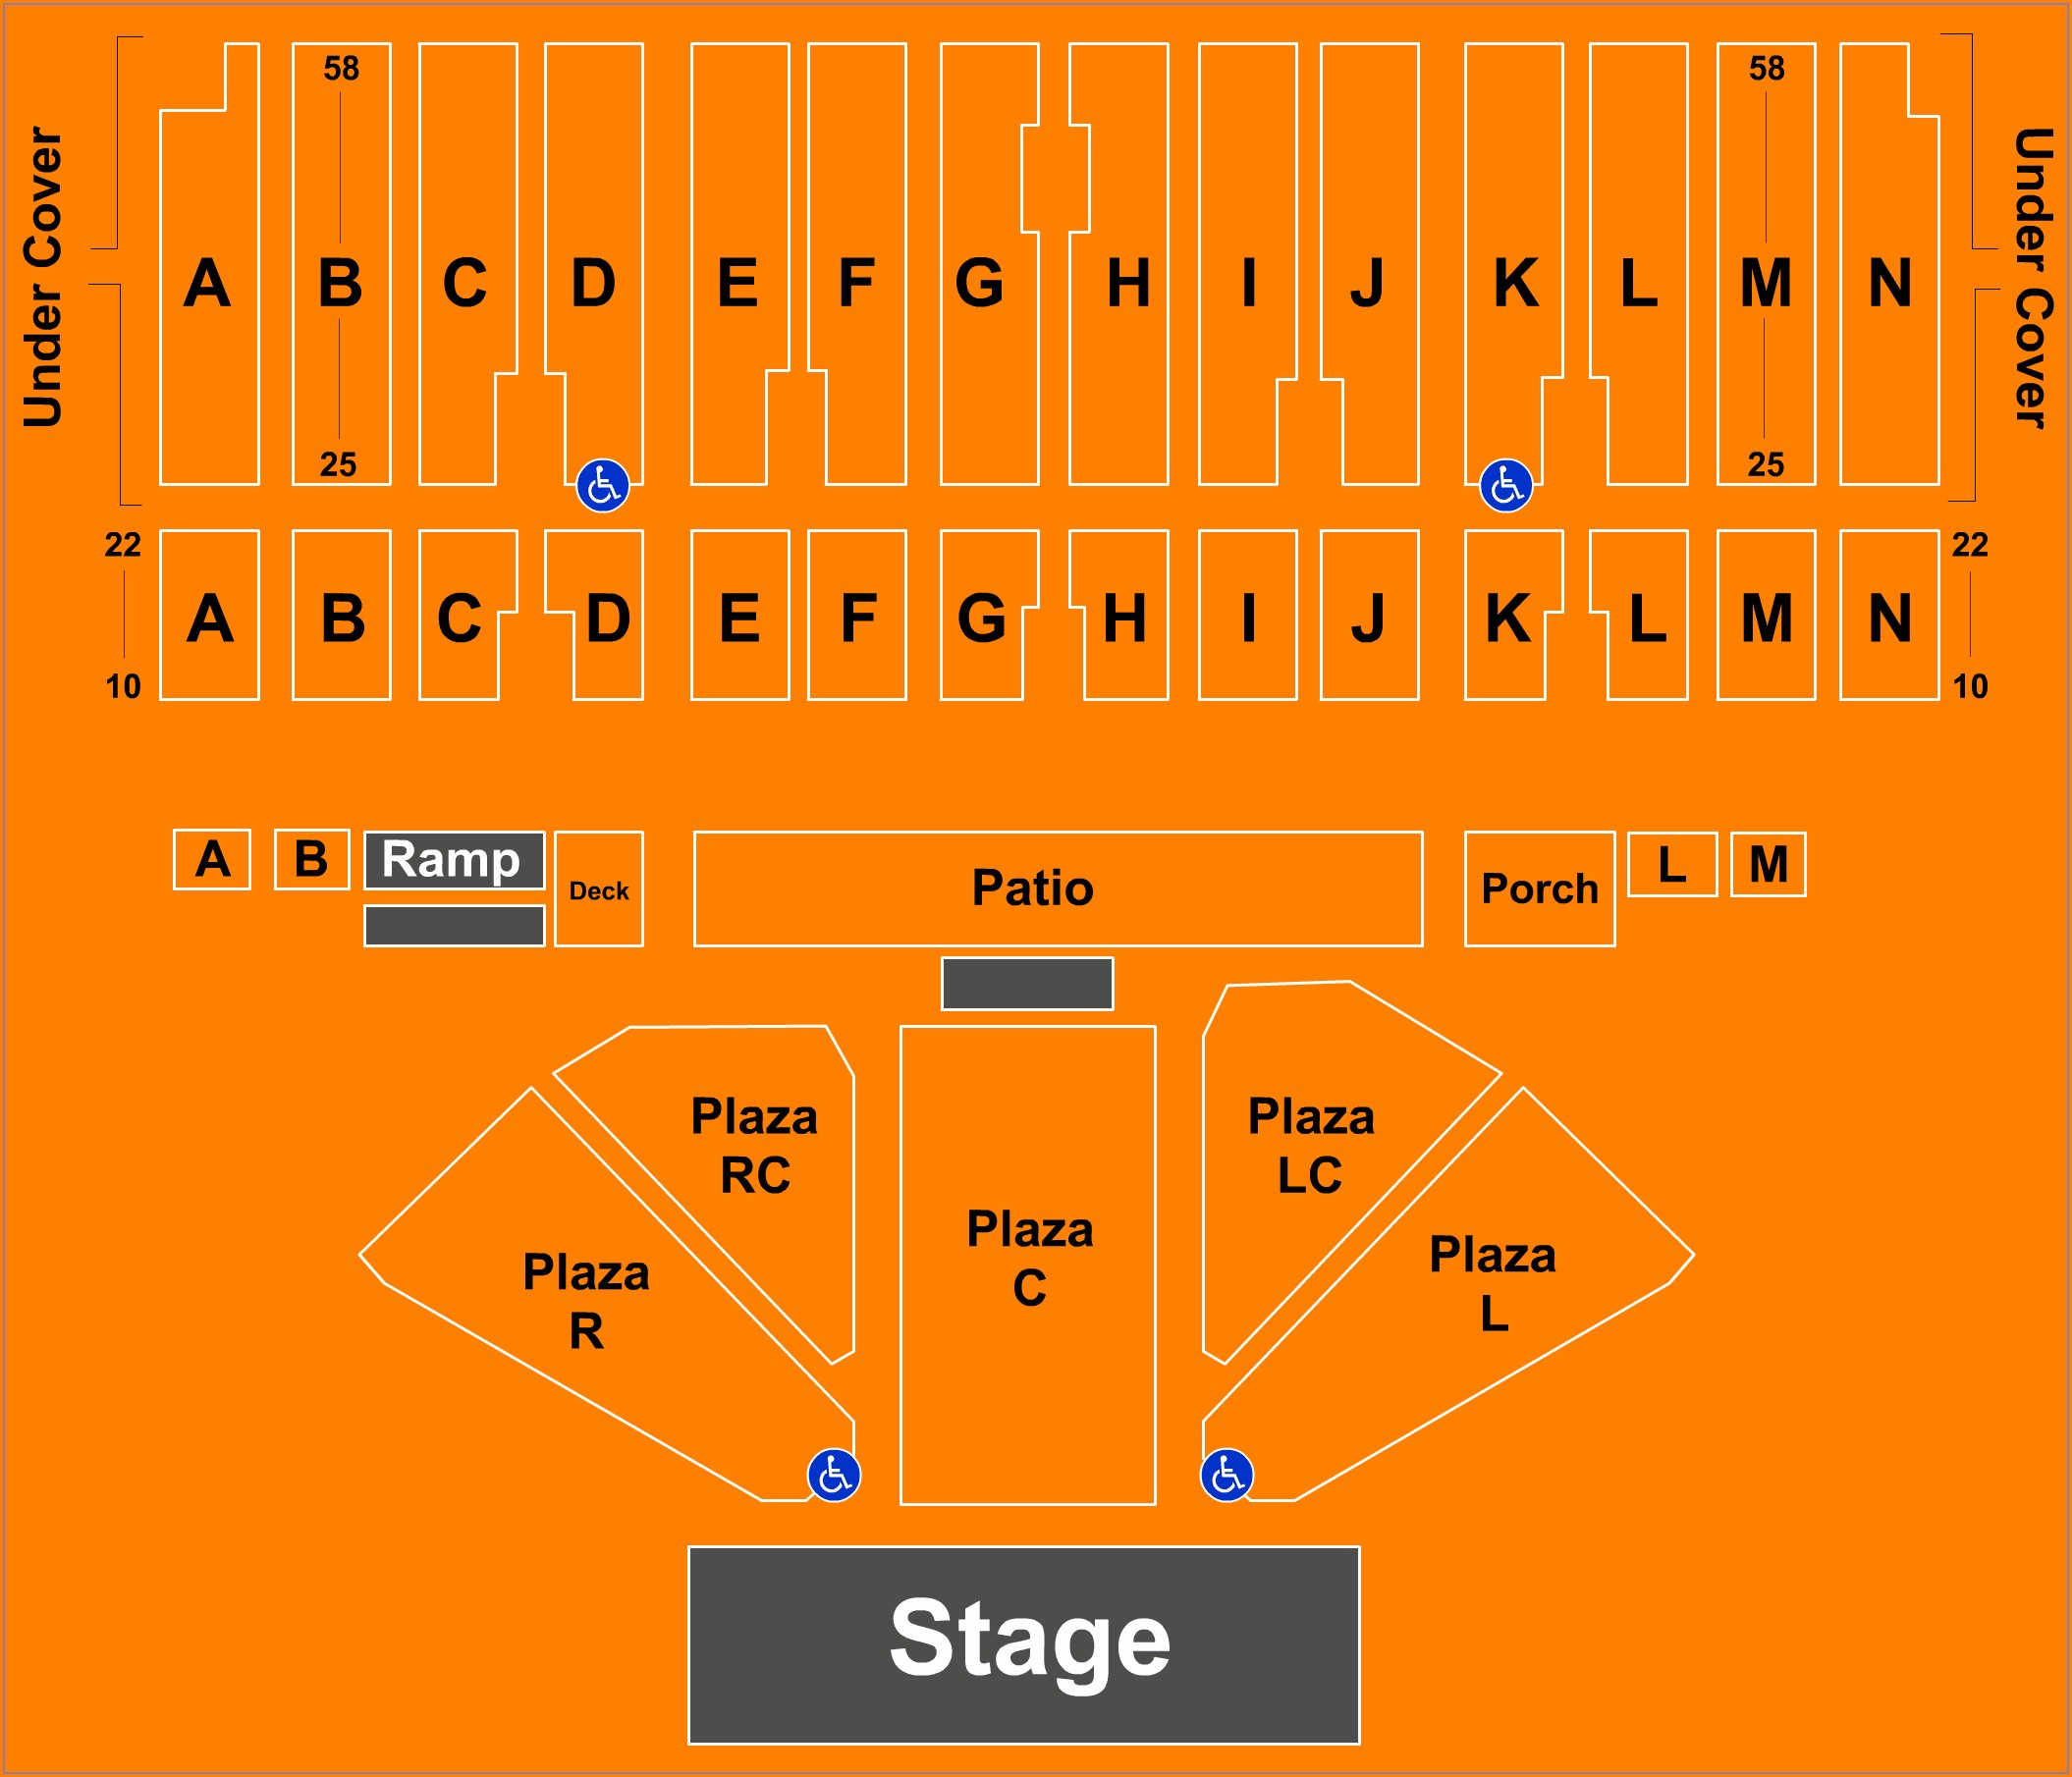 Minnesota State Fair Grandstand Seating Map